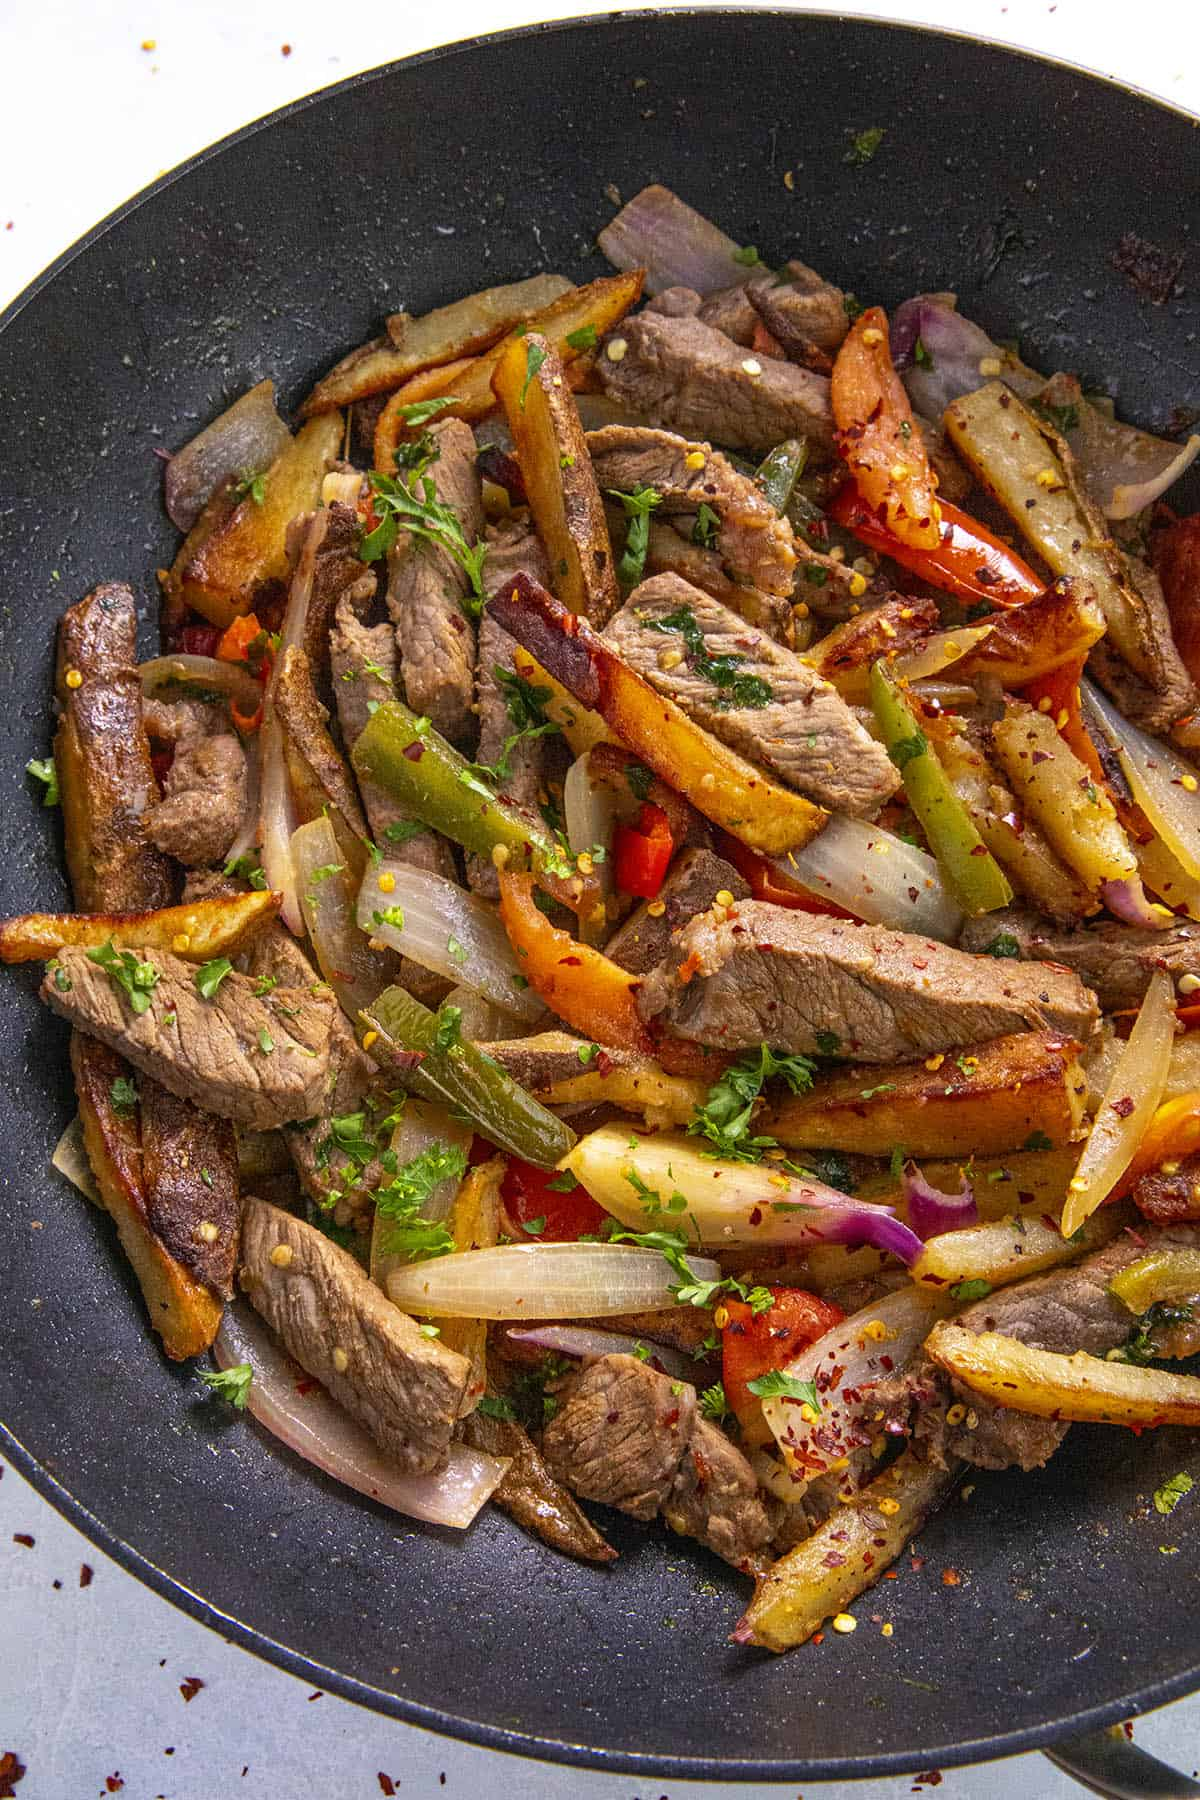 Peruvian Beef Stir Fry with French Fries (Lomo Saltado) in a pan